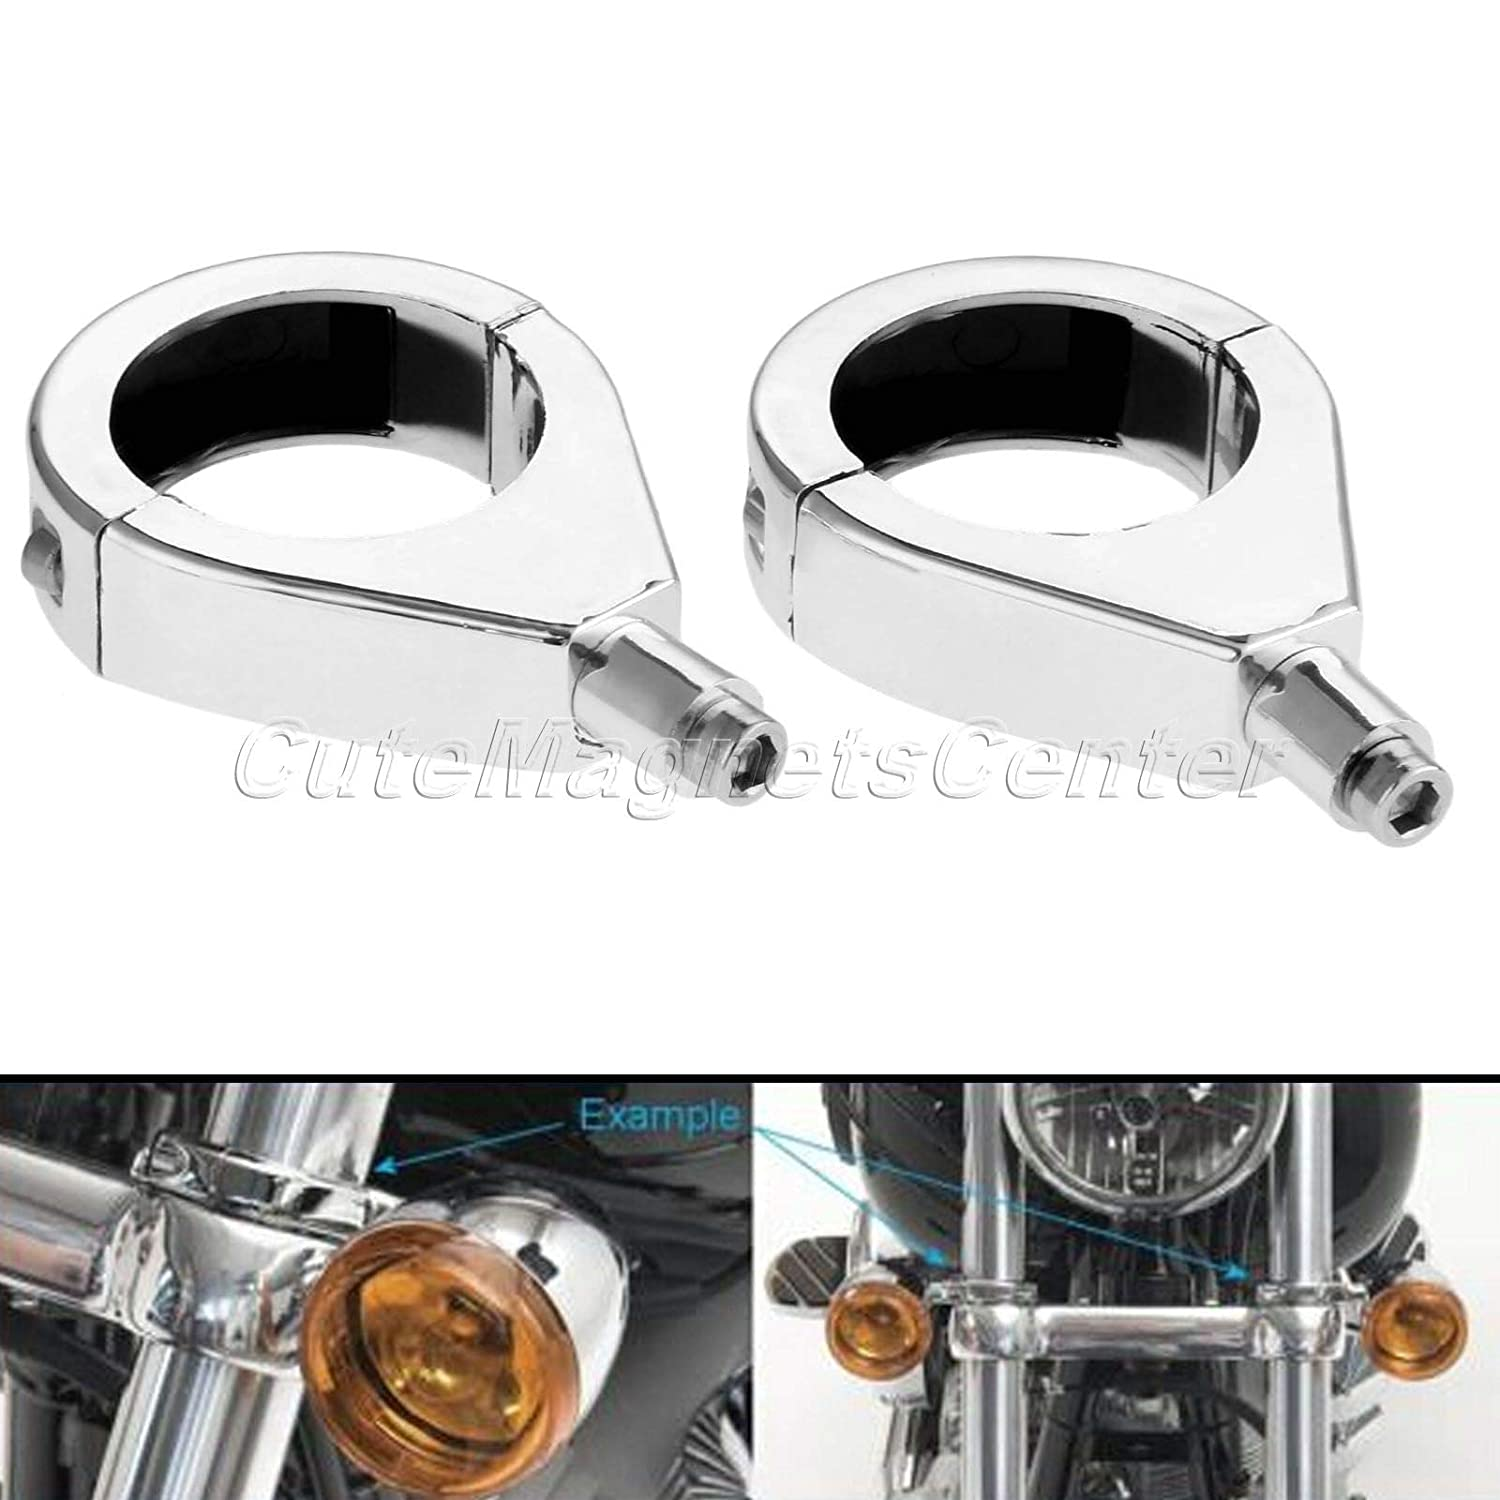 Fittings Mtsooning 2pcs 41mm Motorcycle Turn Signal Lights Indicator Fork Clamps Relocation Mount Bracket for Harley Davidson Softail